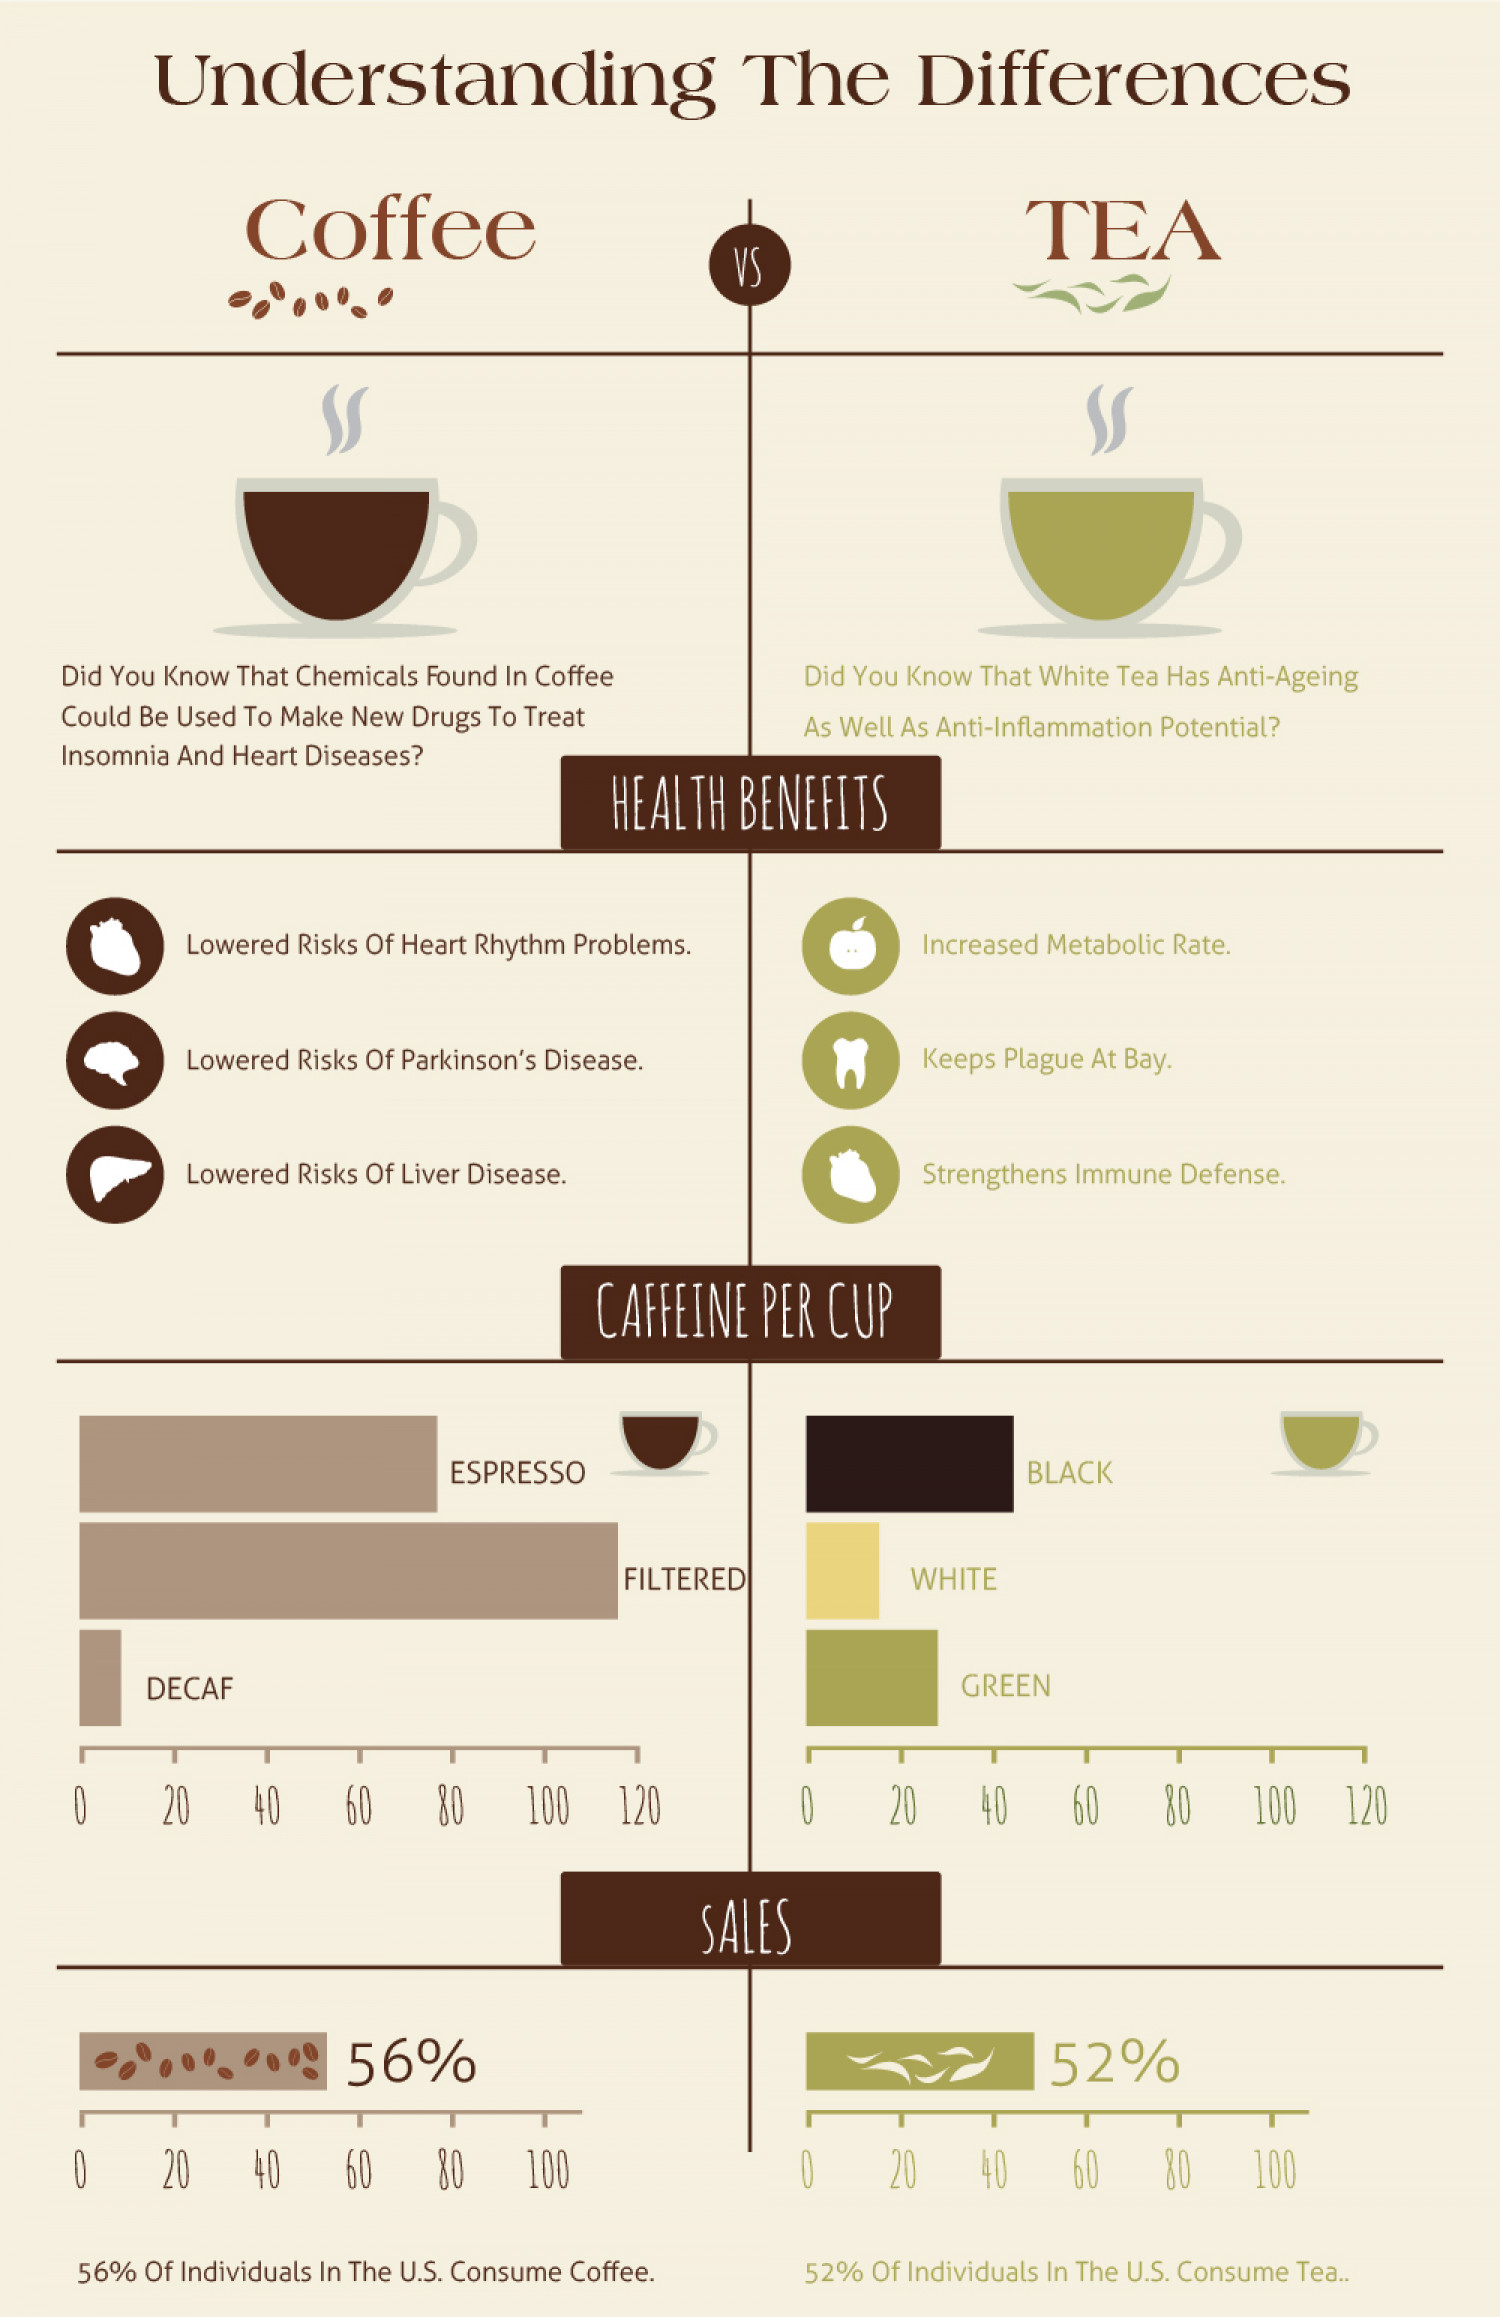 Is Green Tea Better Or Coffee? Infographic